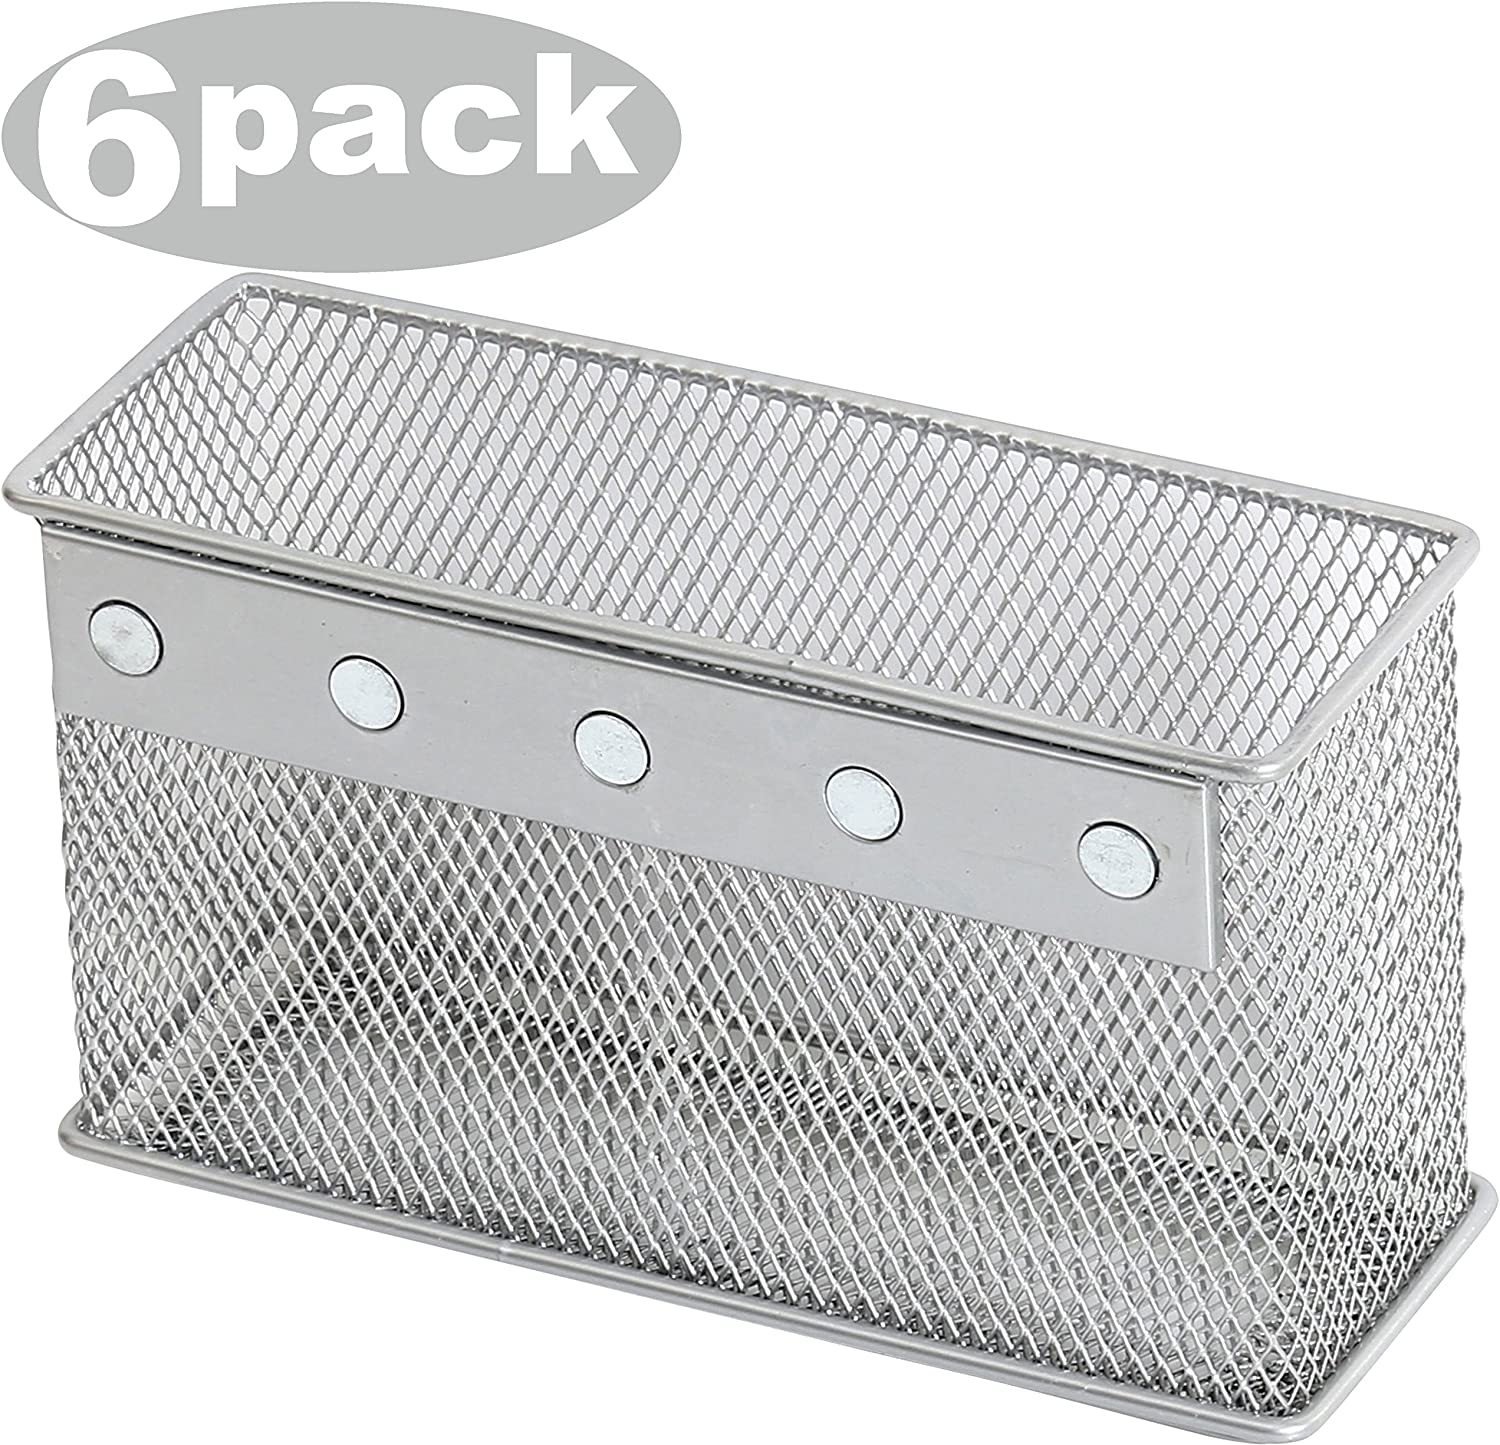 Ybmhome Wire Mesh Magnetic Storage Basket, Container, Desk Tray, Office Supply Accessory Organizer Silver for Refrigerator/Microwave Oven or Magnetic Surface in Kitchen or Office 2305-6 (6, Large)